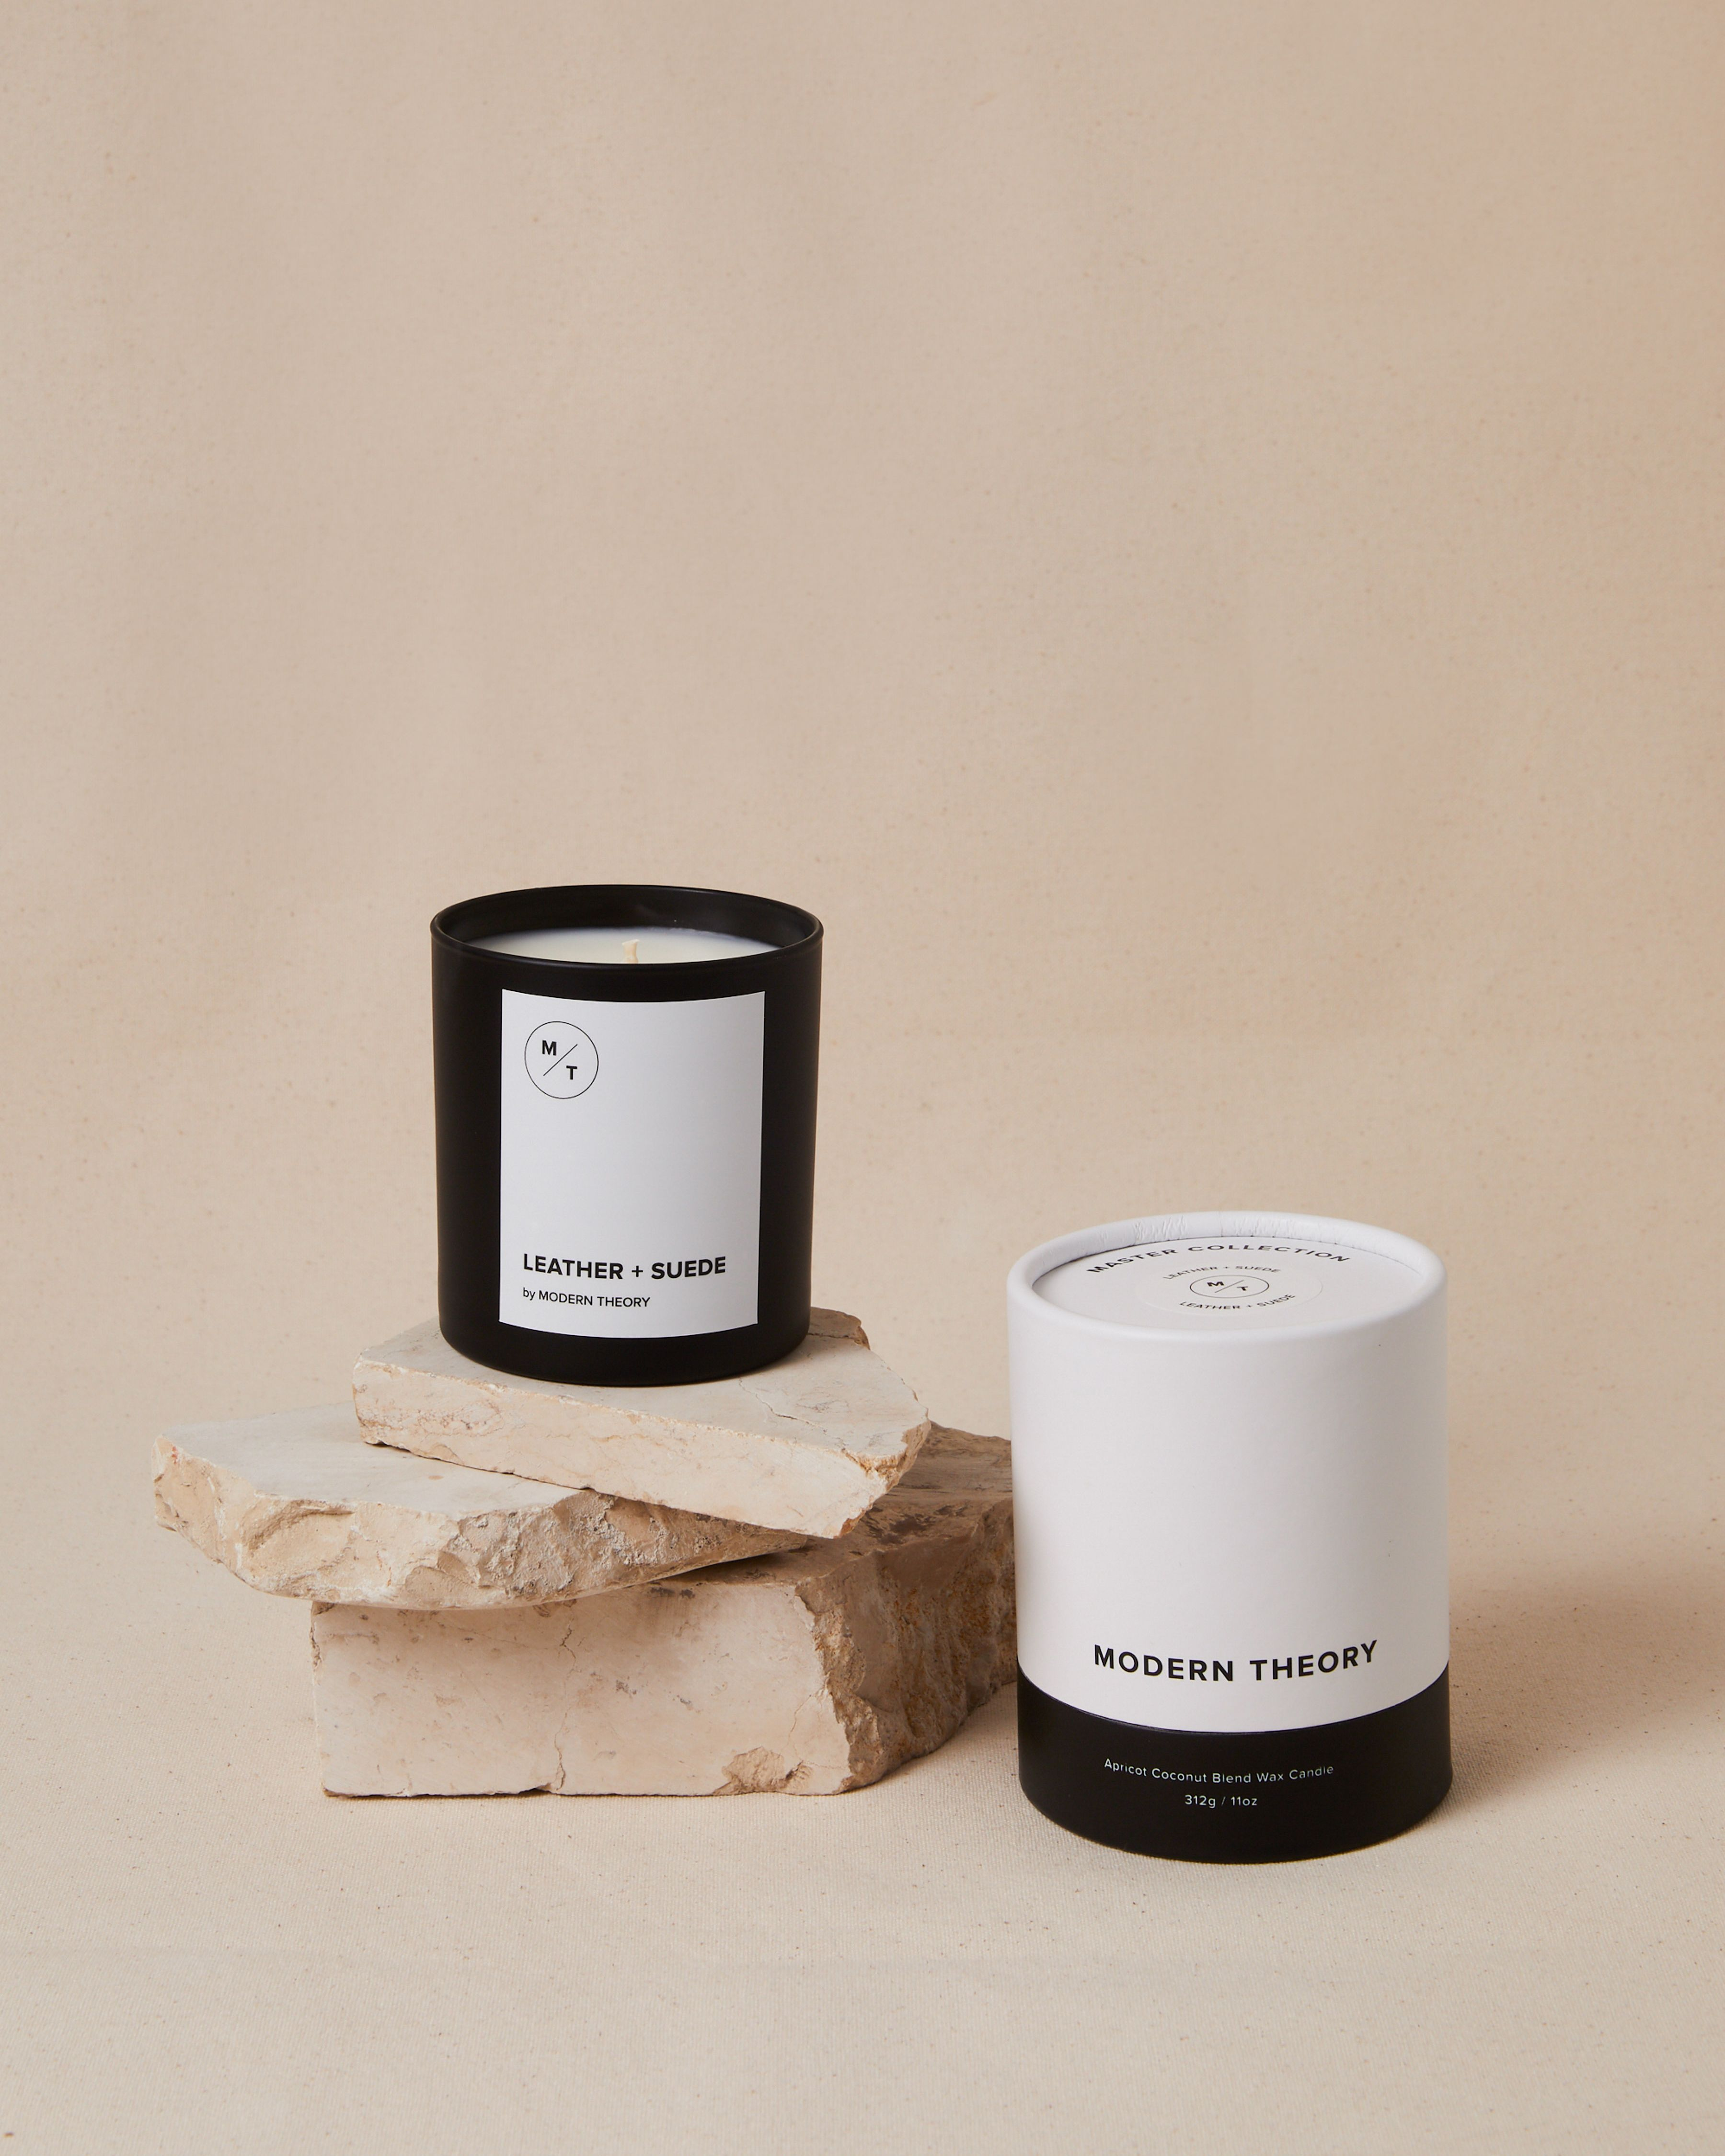 Product Image for Leather + Suede Candle